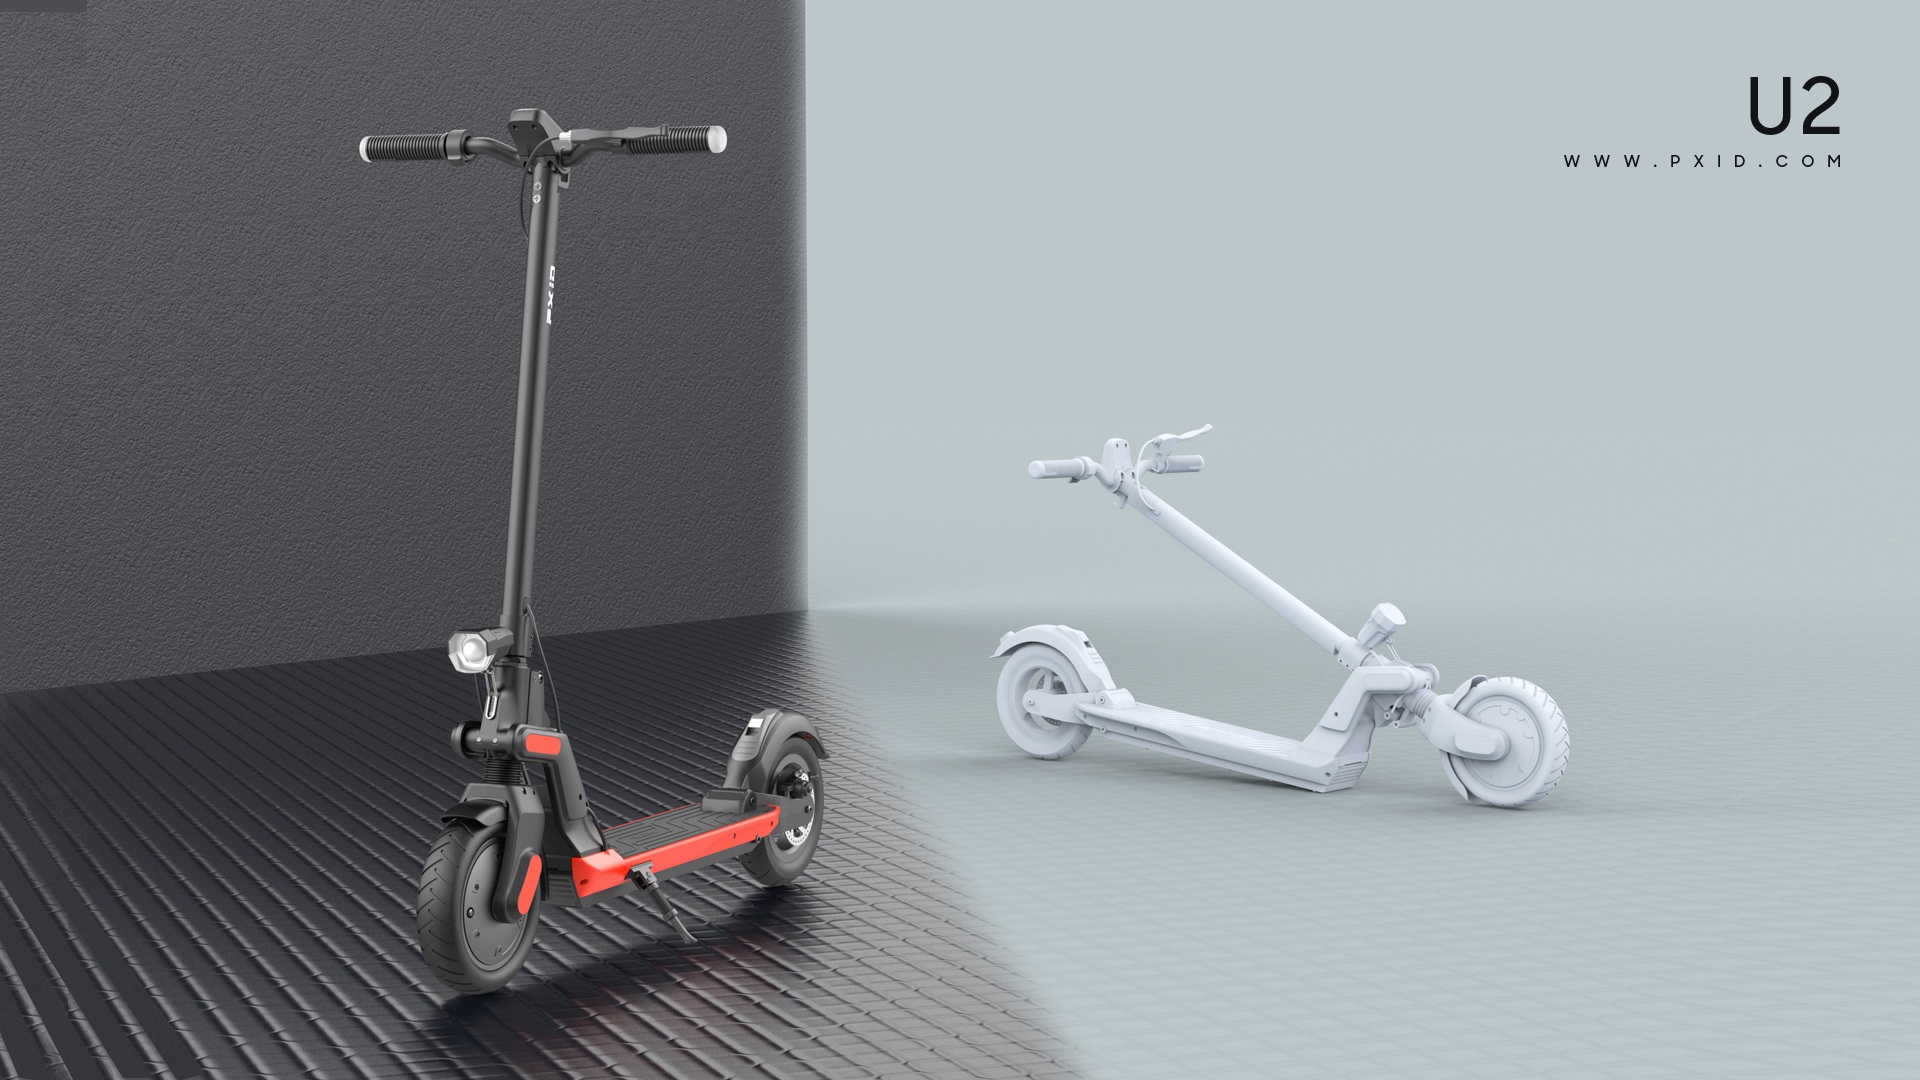 Electric scooters, if used safely, can be fast, portable, fun and a viable way to fill transportation gaps